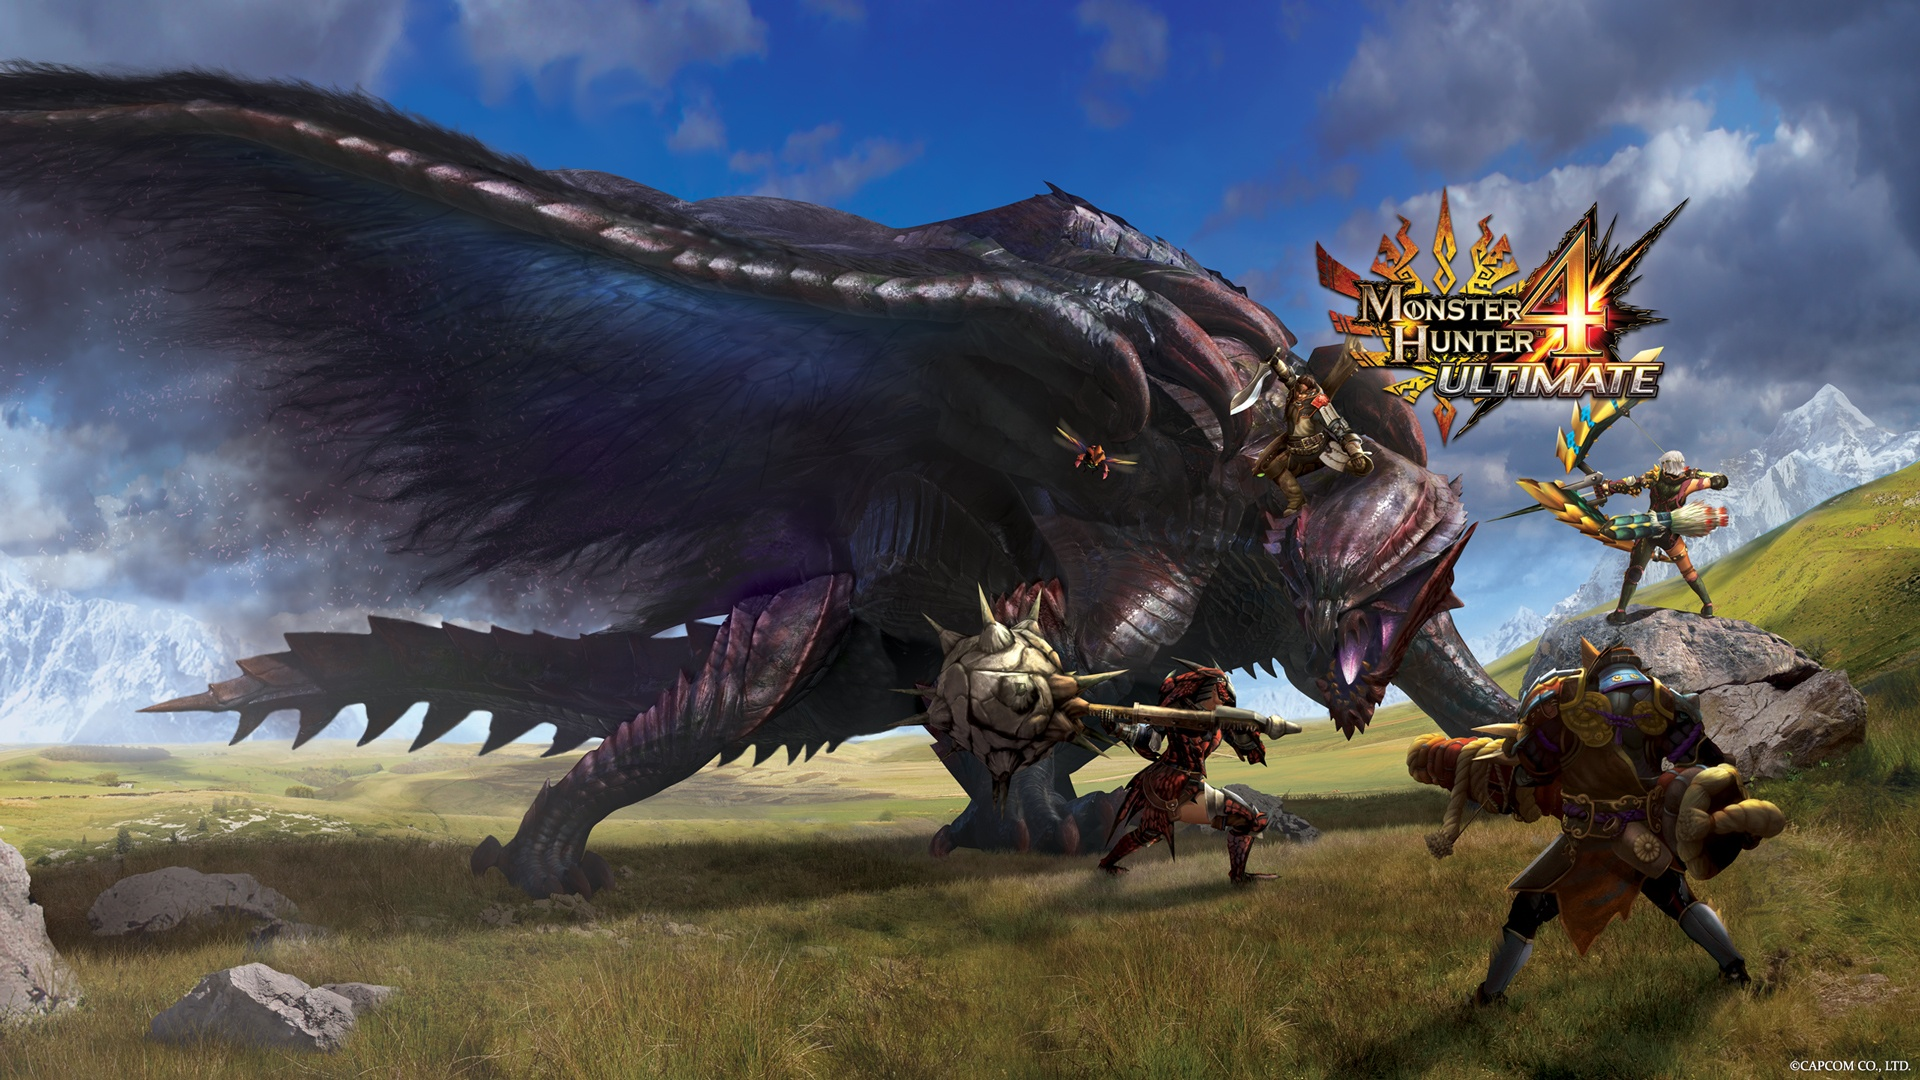 Monster Hunter 4 Ultimate is shaping up to be the most accessible of the notoriously difficult series, with new weapons, portable online multiplayer, and loads upon loads of customization. February can't come soon enough. Image couresy of pauseyourgame.com